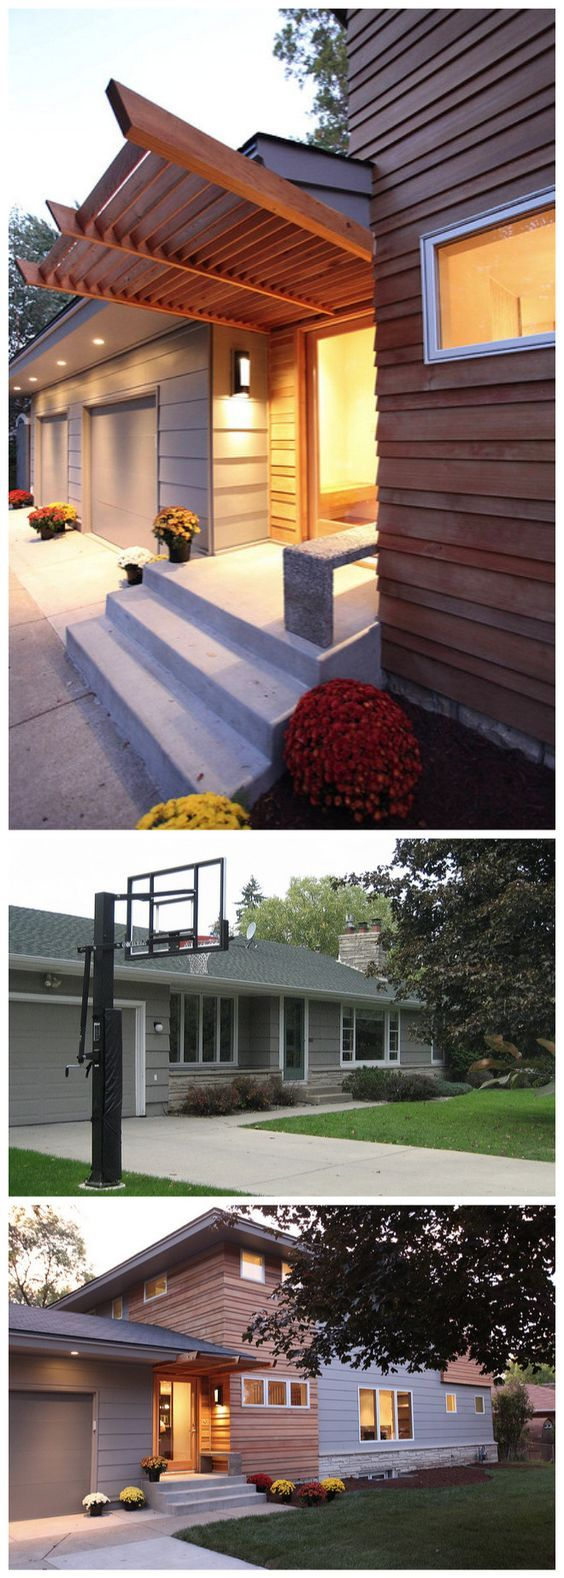 3rd Floor Addition Home Design Ideas Renovations Photos: Before And After Of Ranch / Rambler Renovation